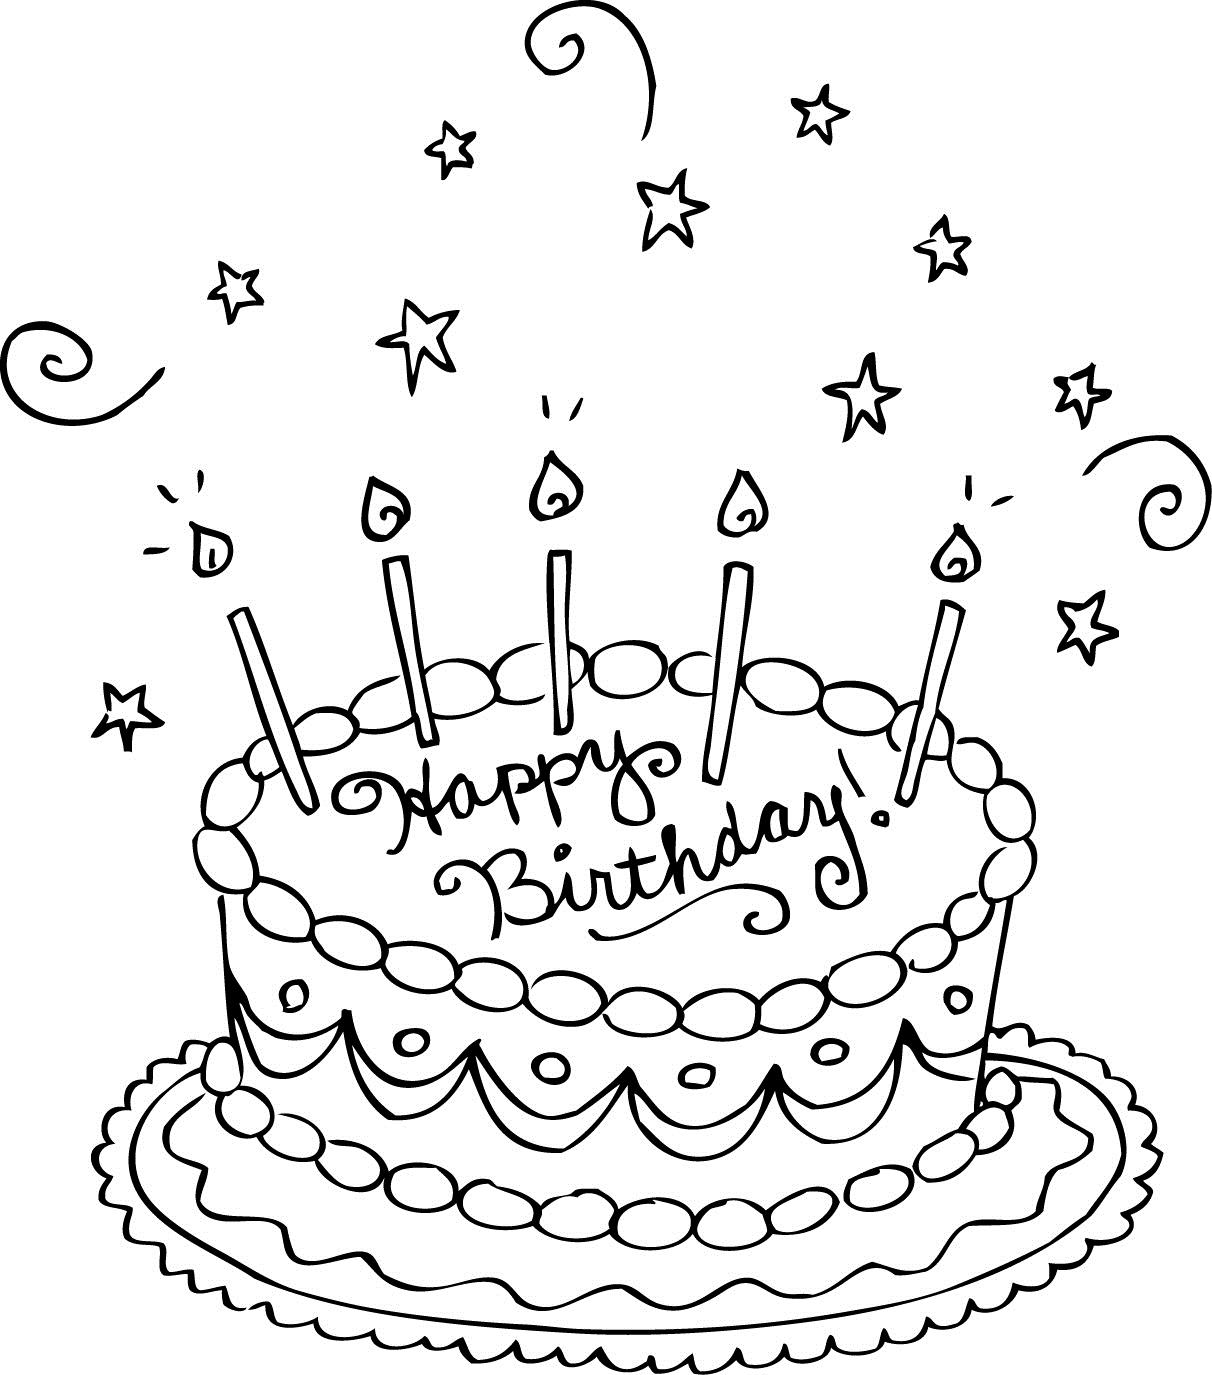 birthday printables to color ; Coloring-Page-Birthday-Cake